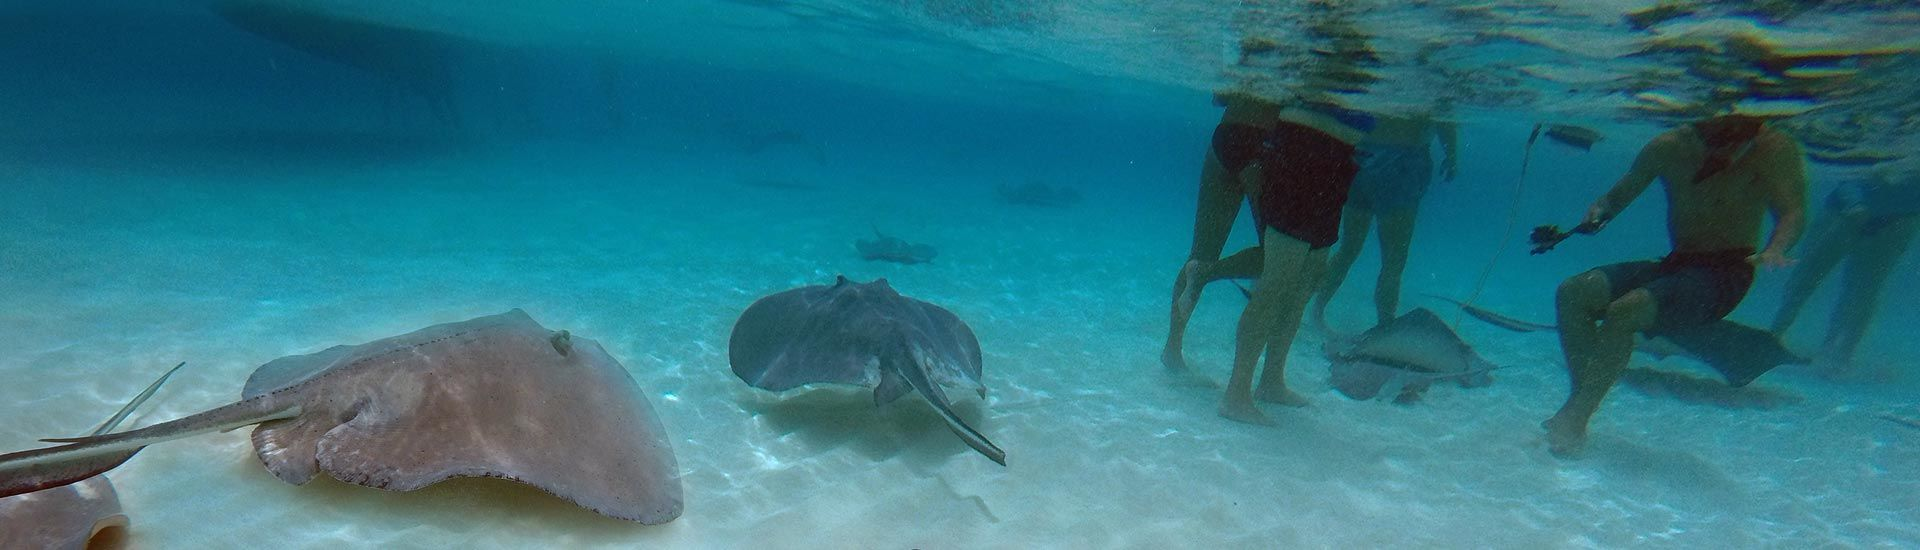 Immerse yourself in a cloud of swirling rays at Grand Cayman's Stingray City. It's the world's original stingray encounter, and it's number one with divers and snorkelers.